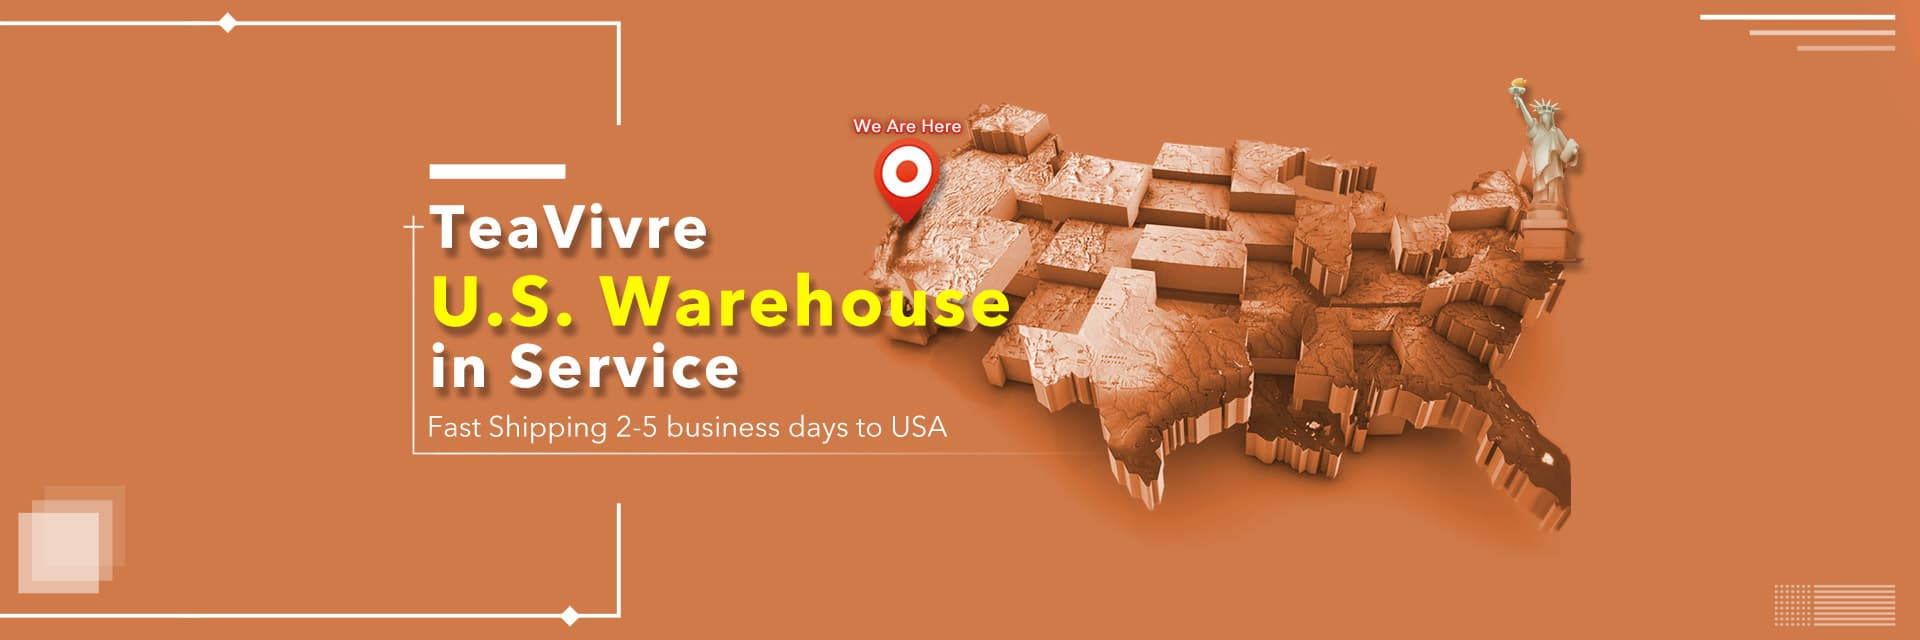 TeaVivre U.S. Warehouse